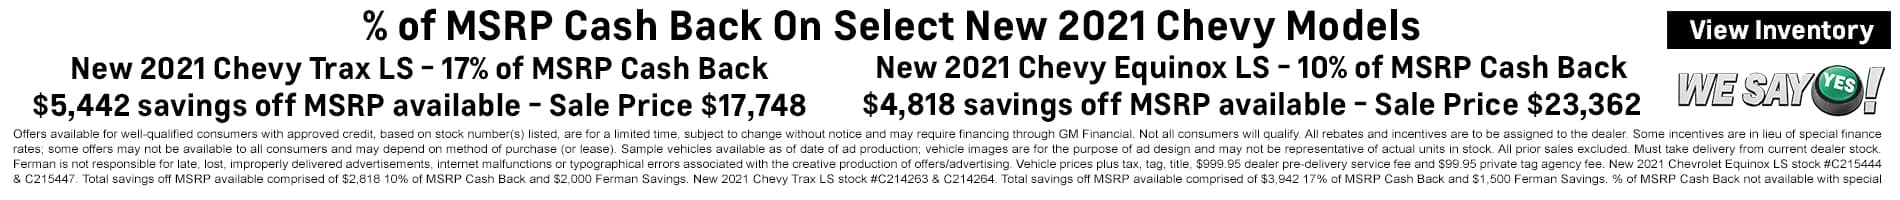 % of MSRP Cash Back on Select on Select New 2021 Chevy Models | 17% of MSRP Cash Back on New 2021 Chevy Trax | 10% of MSRP Cash Back on New 2021 Chevy Equinox